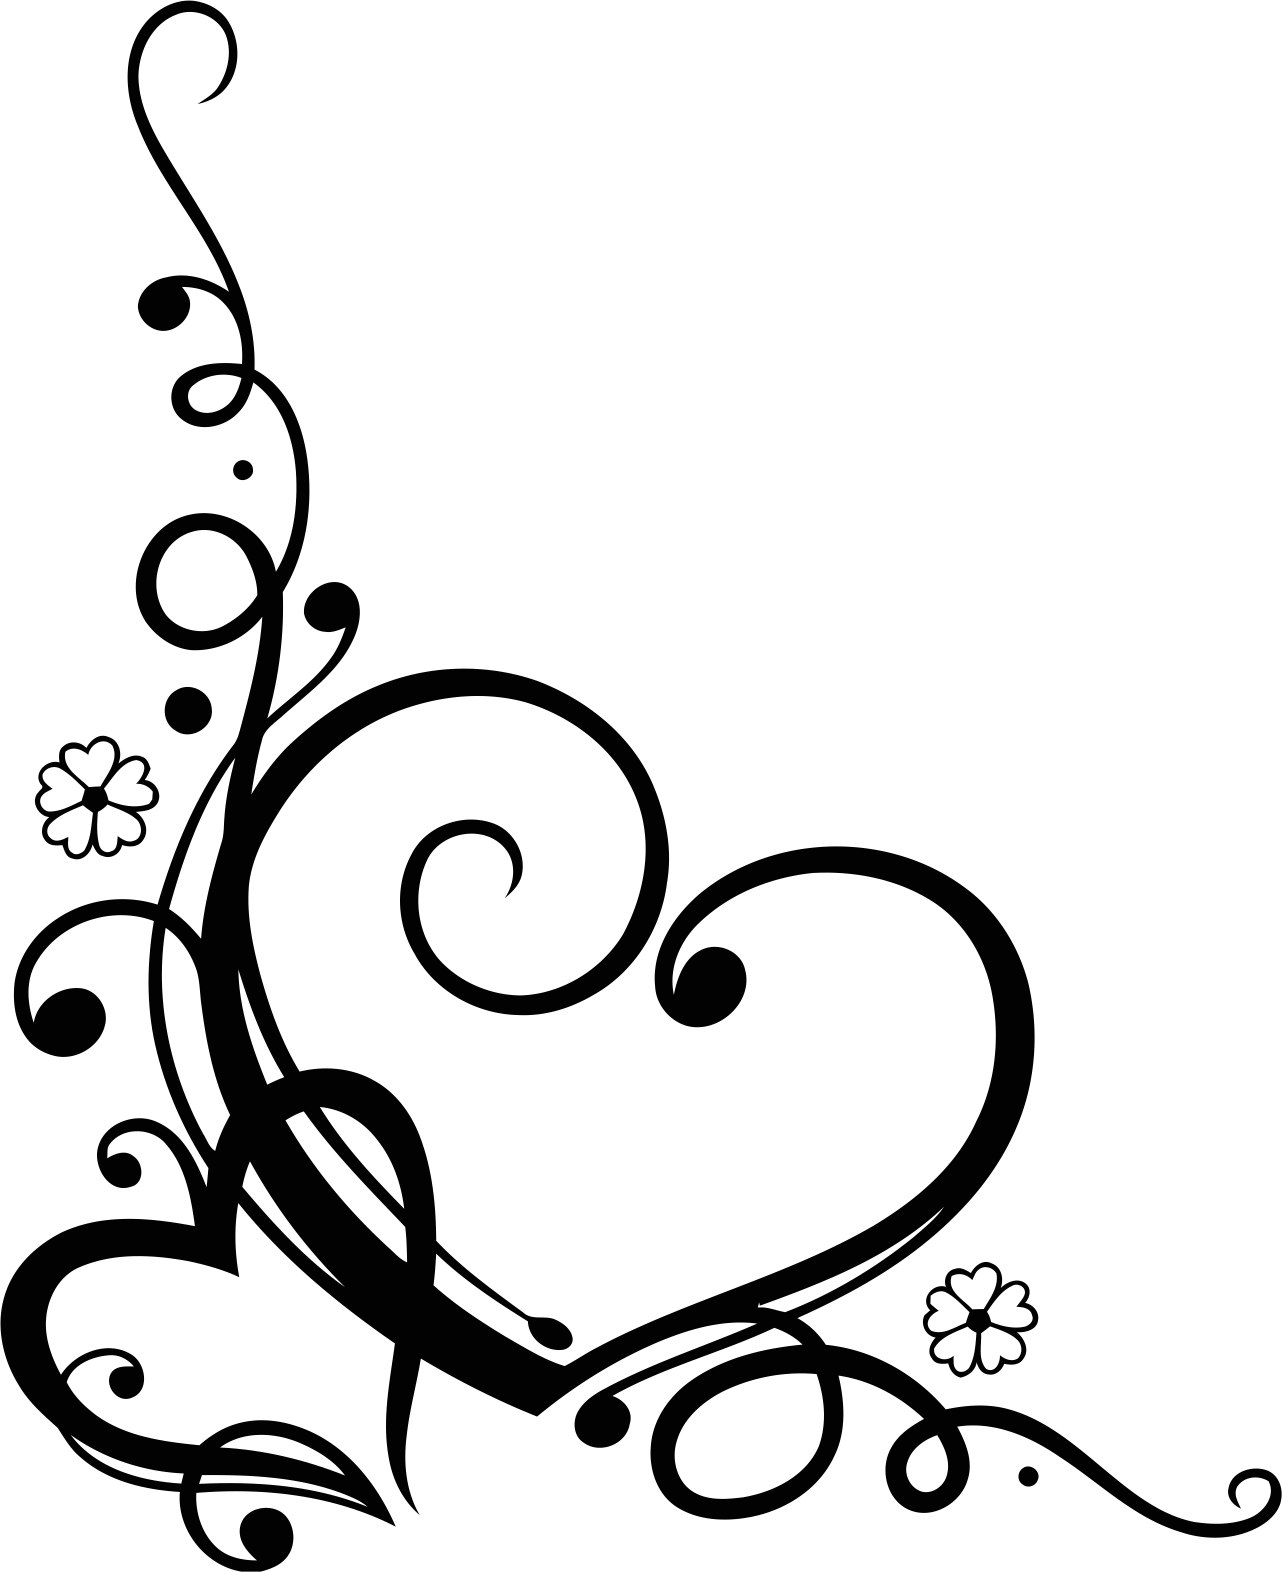 Love Heart Floral Vector Free Vector Cdr Download